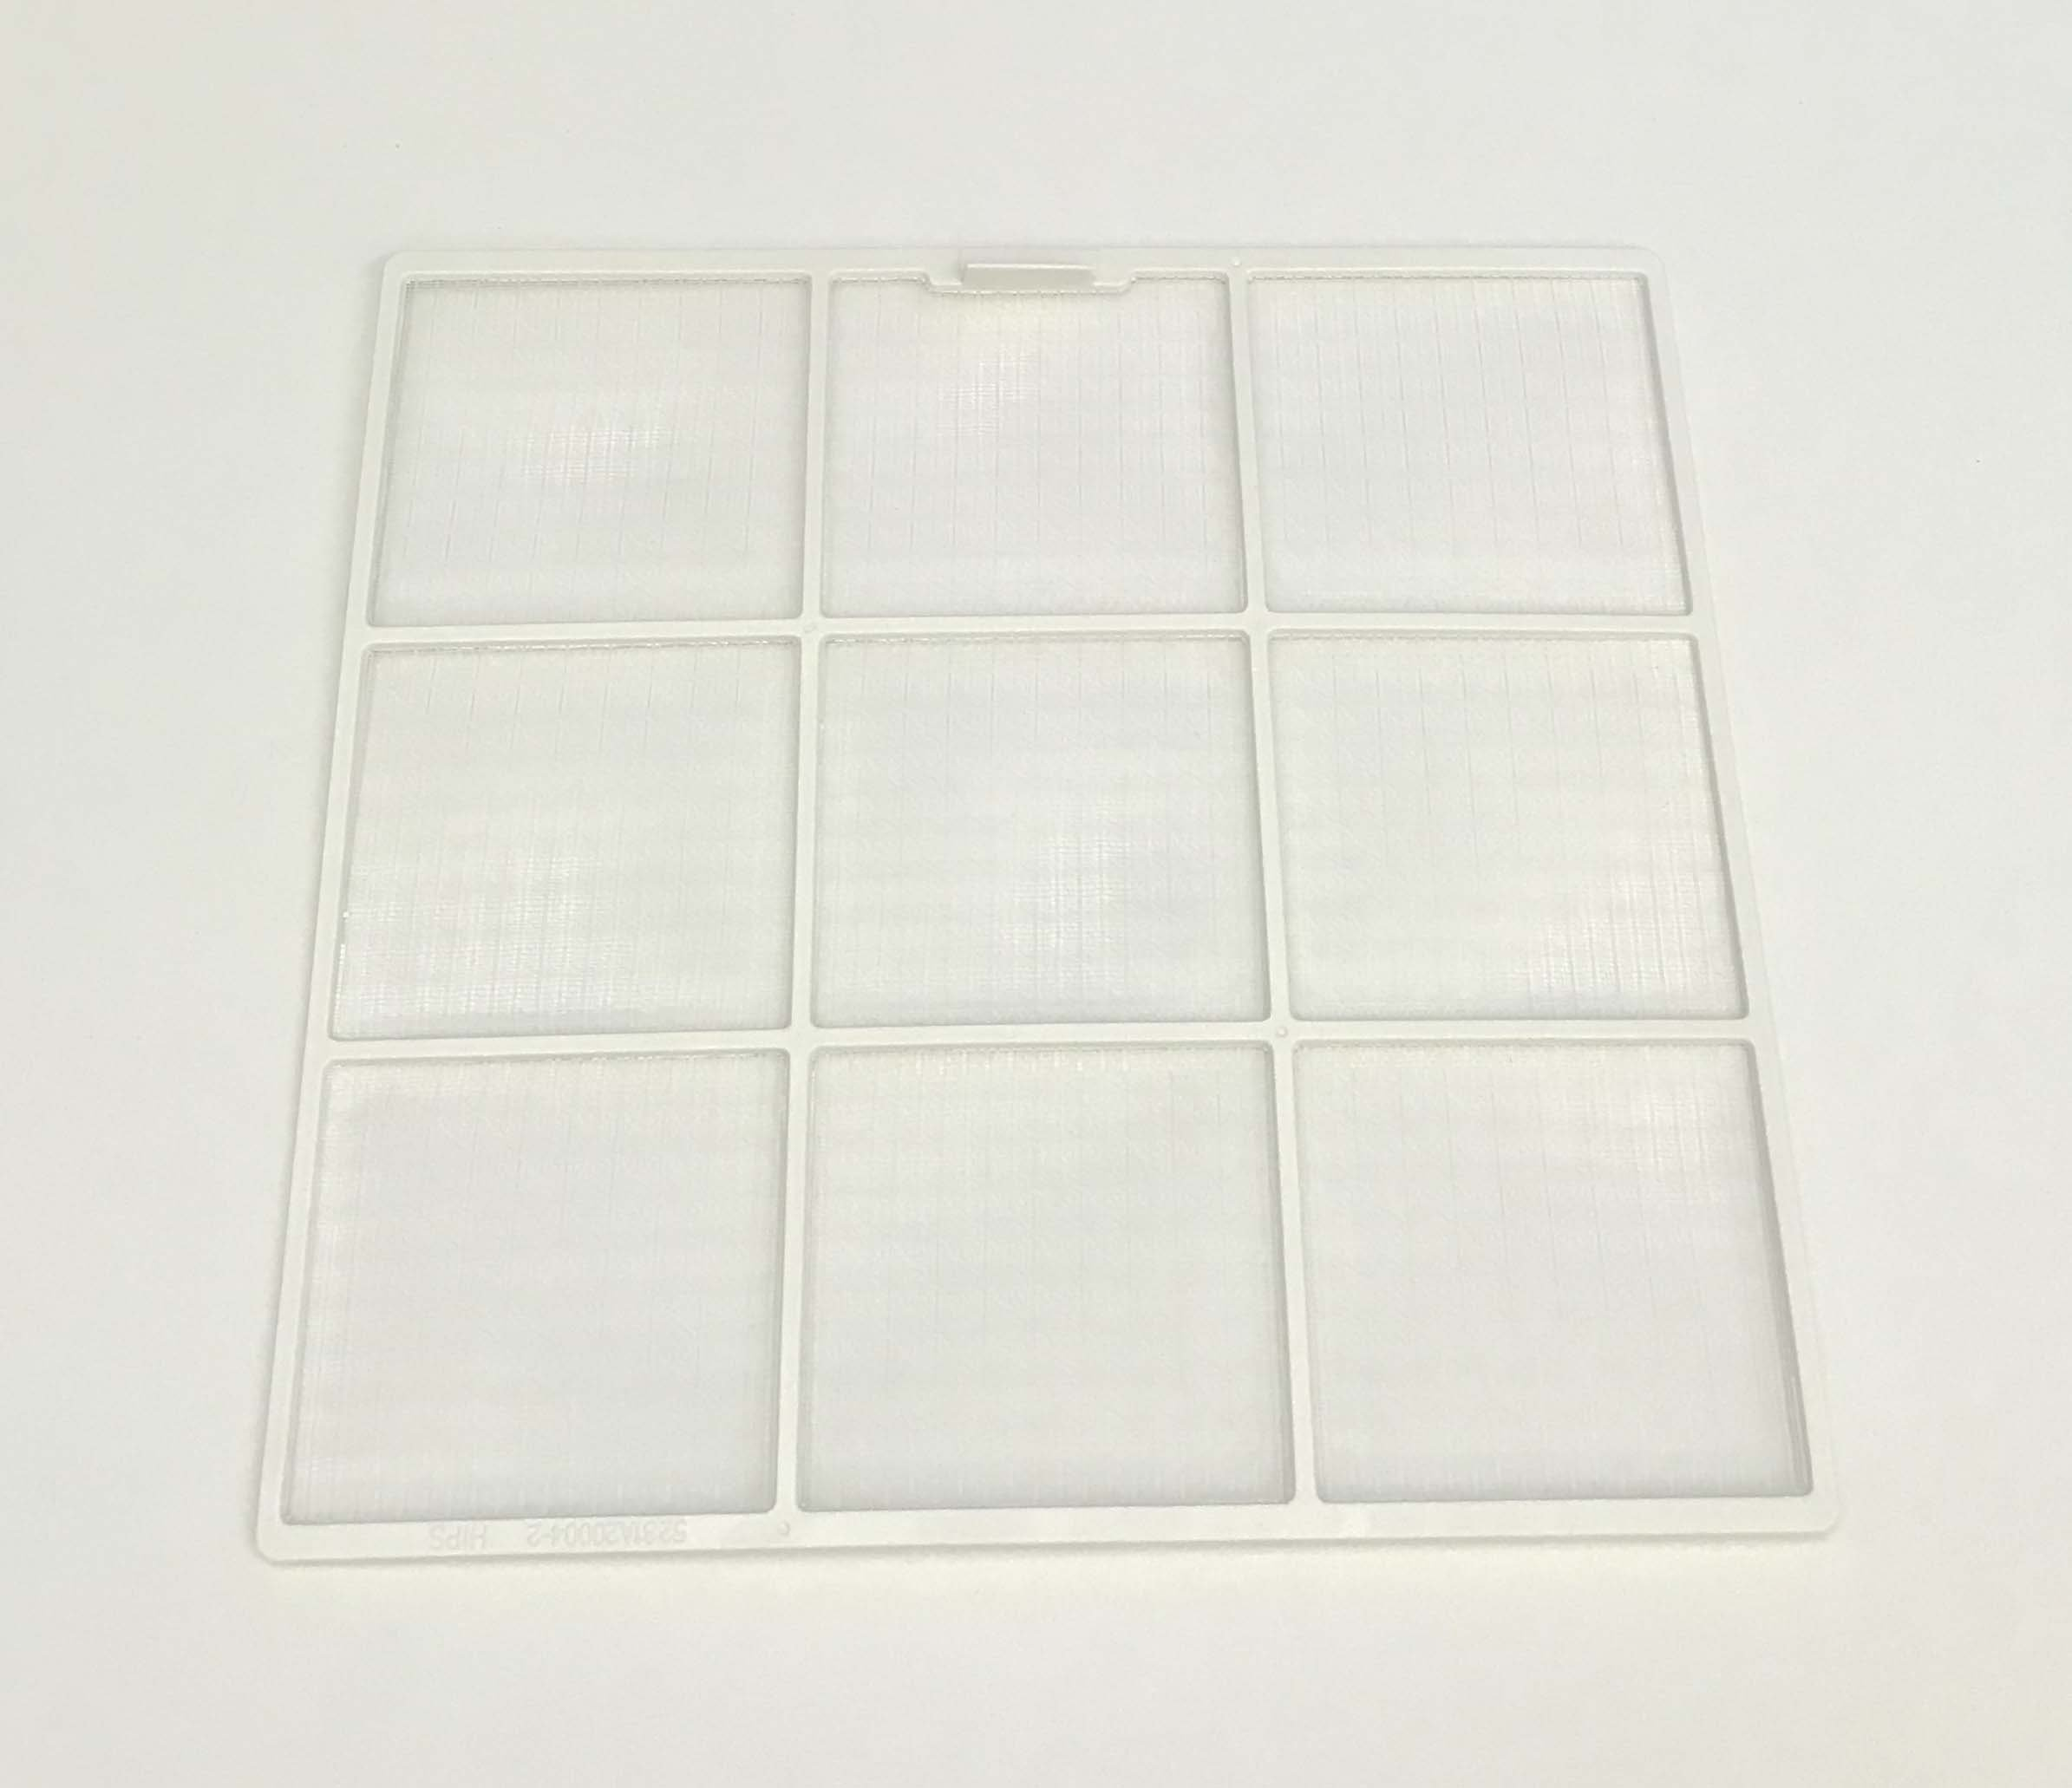 OEM LG Air Conditioner AC Filter Specifically For LW8016HR by LG